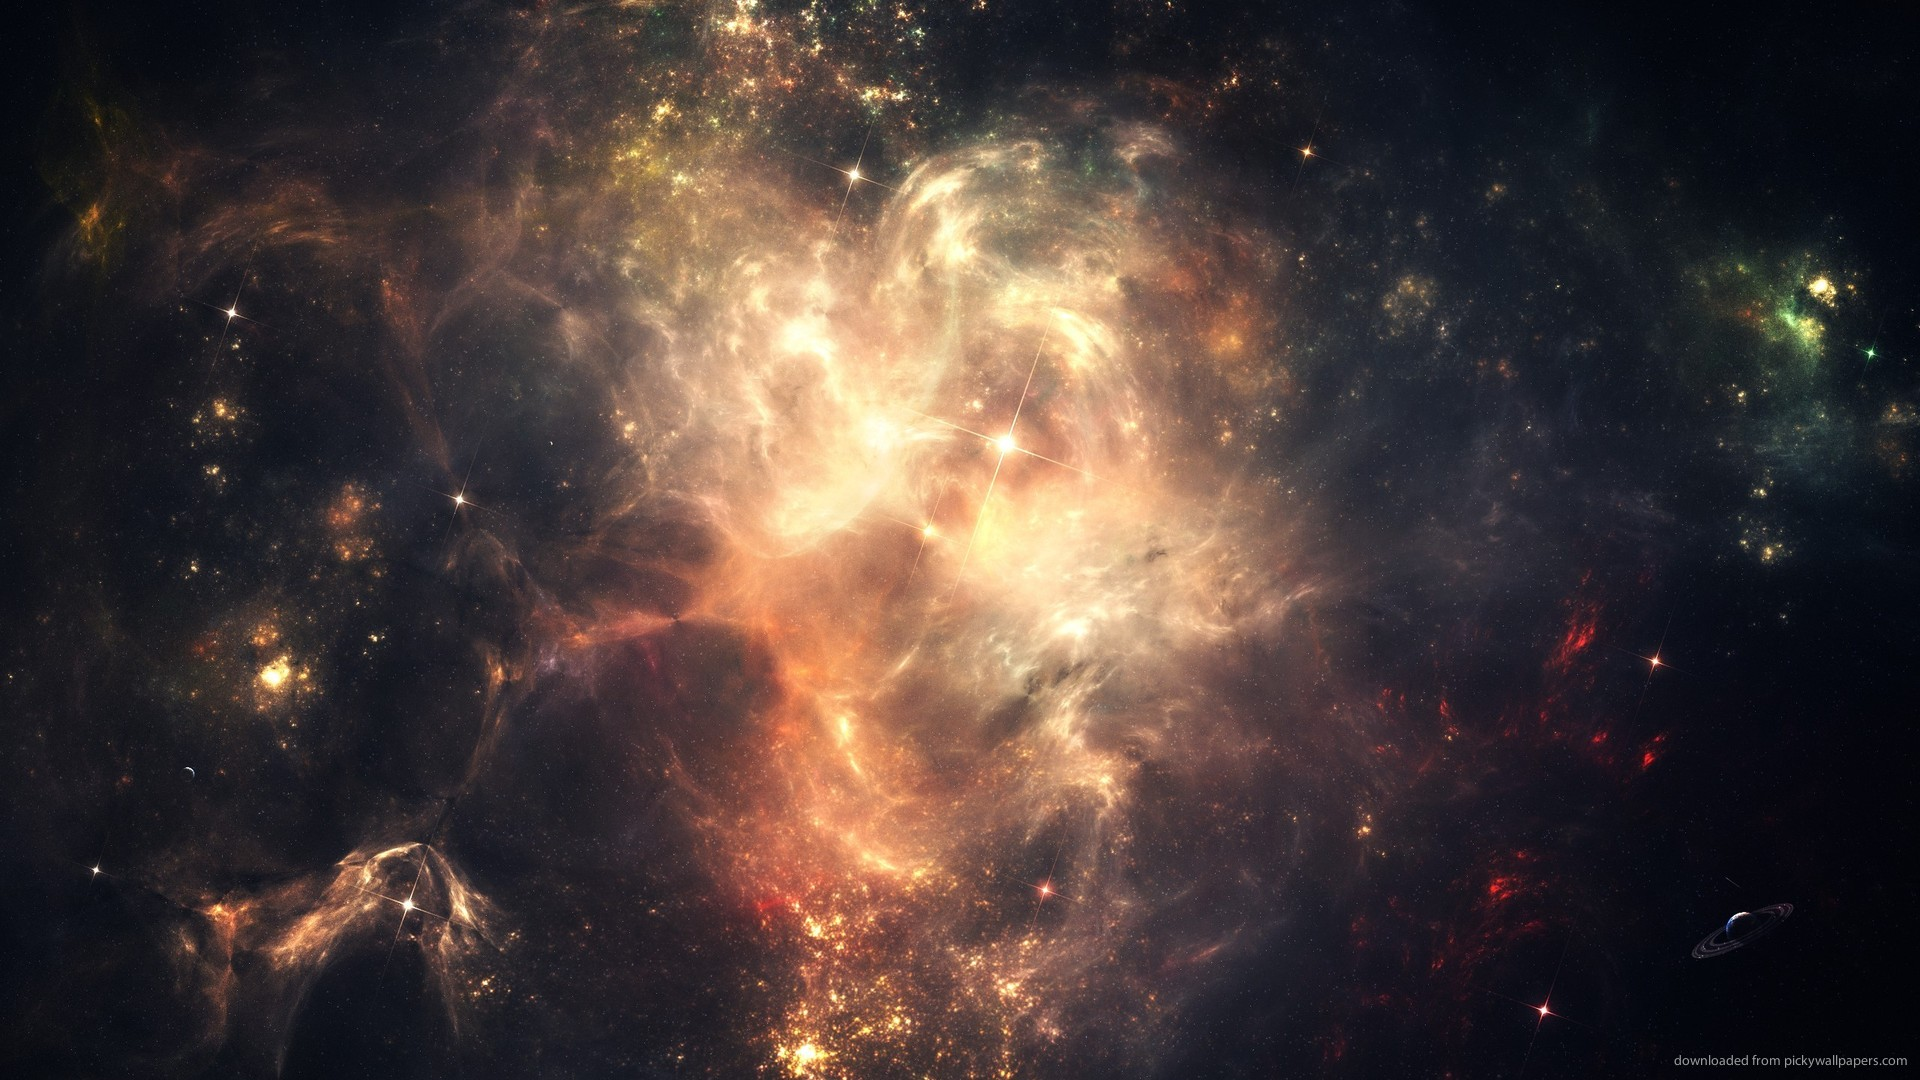 Universe Wallpapers 1080p 75 Images: Galaxy Wallpaper 1080p